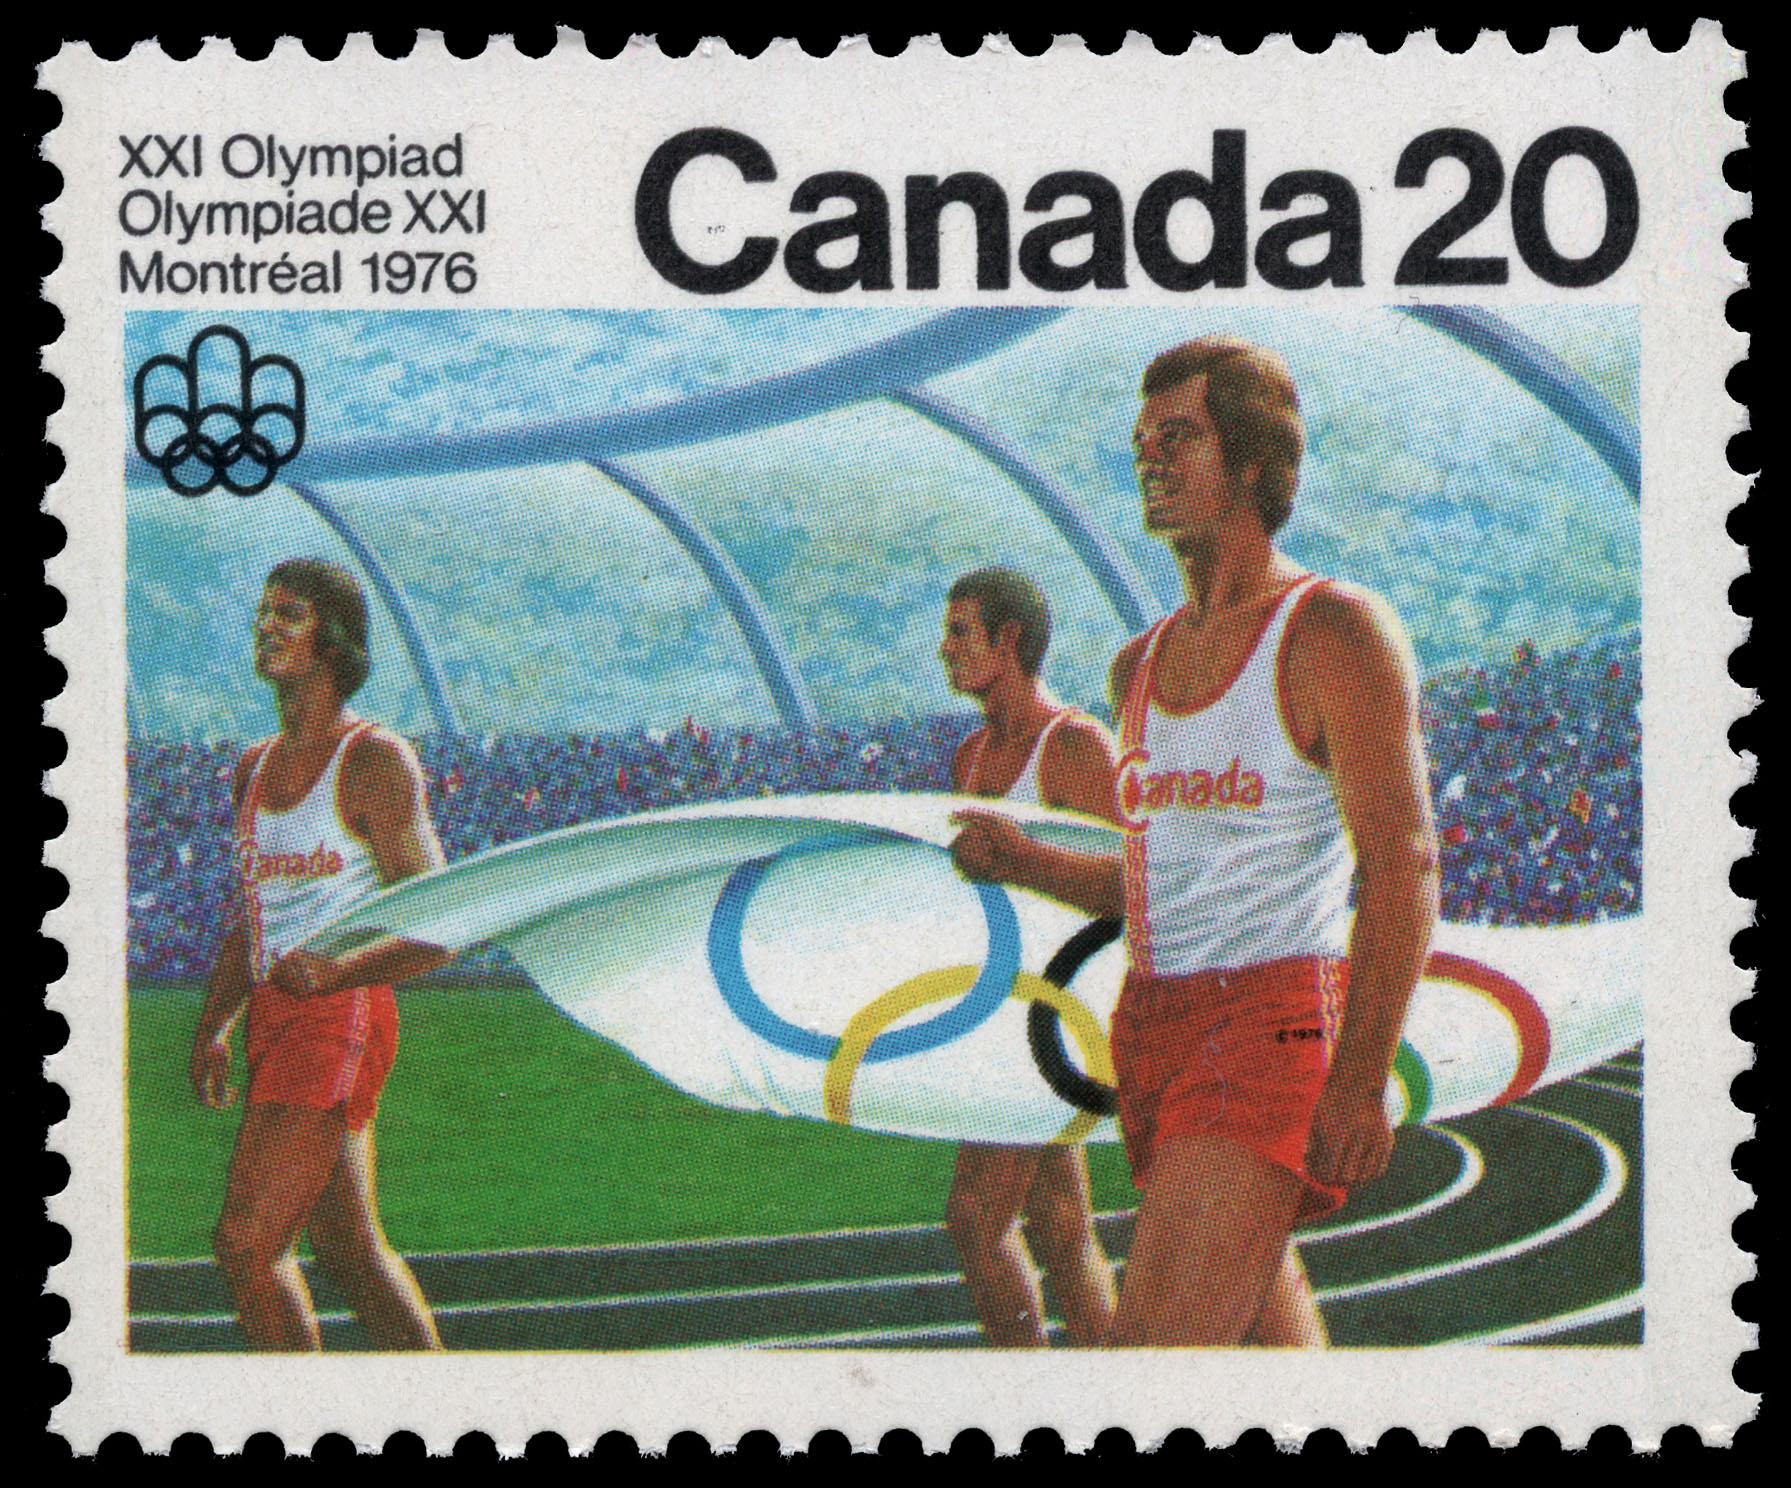 Opening Ceremony Canada Postage Stamp | 1976 Olympic Games, Ceremonies